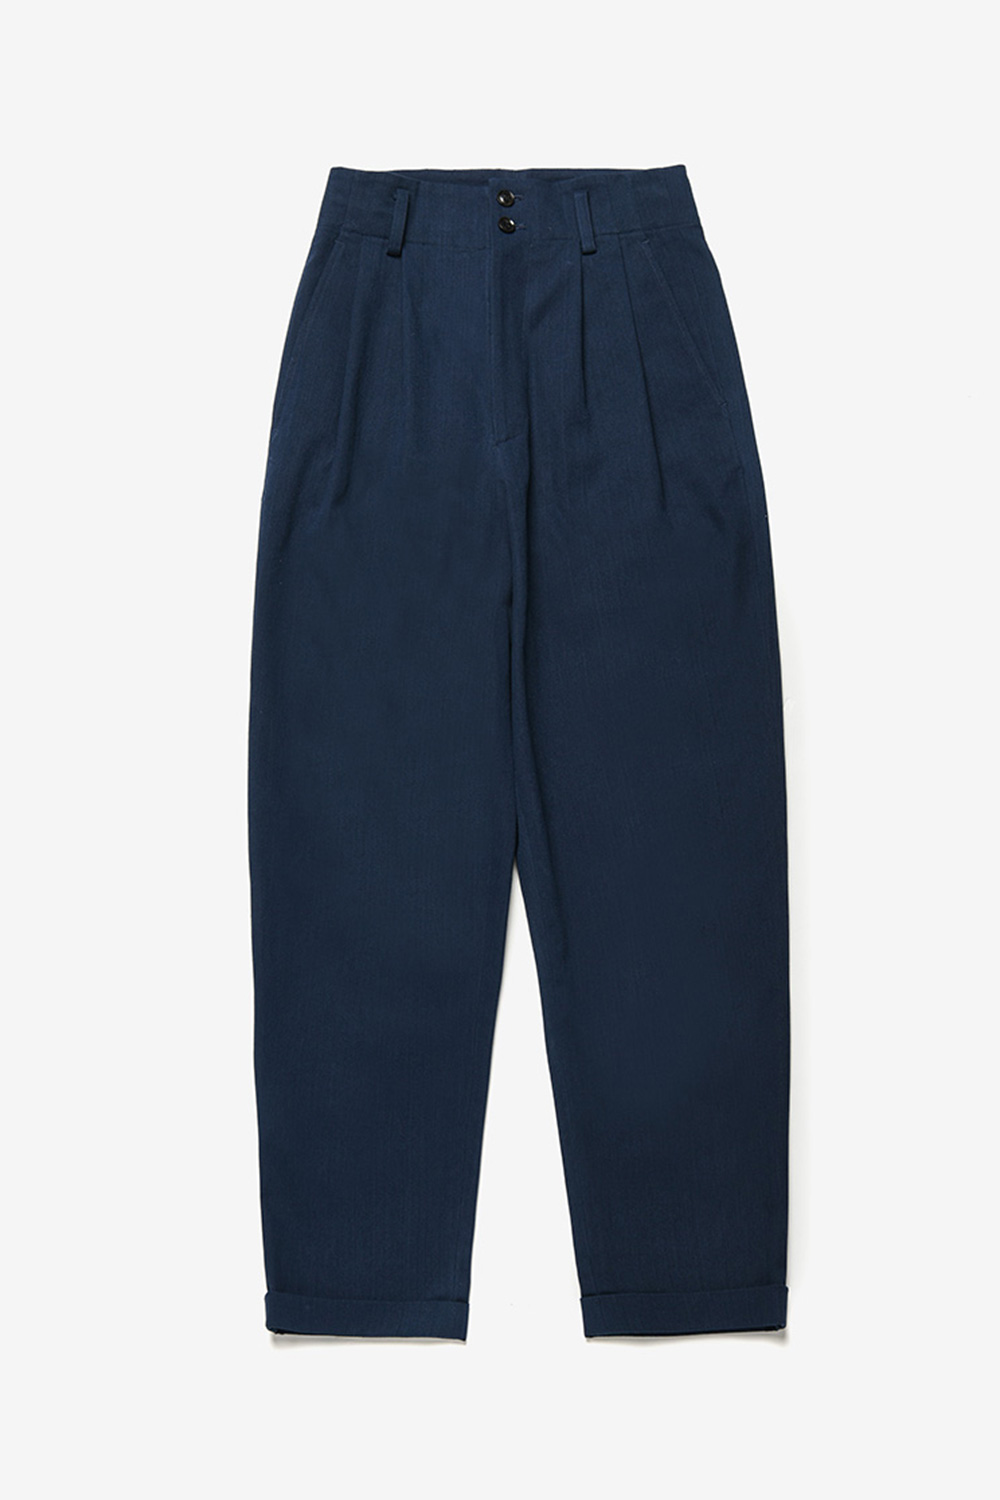 [벤시몽 X 비아플레인] Serge Cotton Pants_Navy BS0SPT405NV